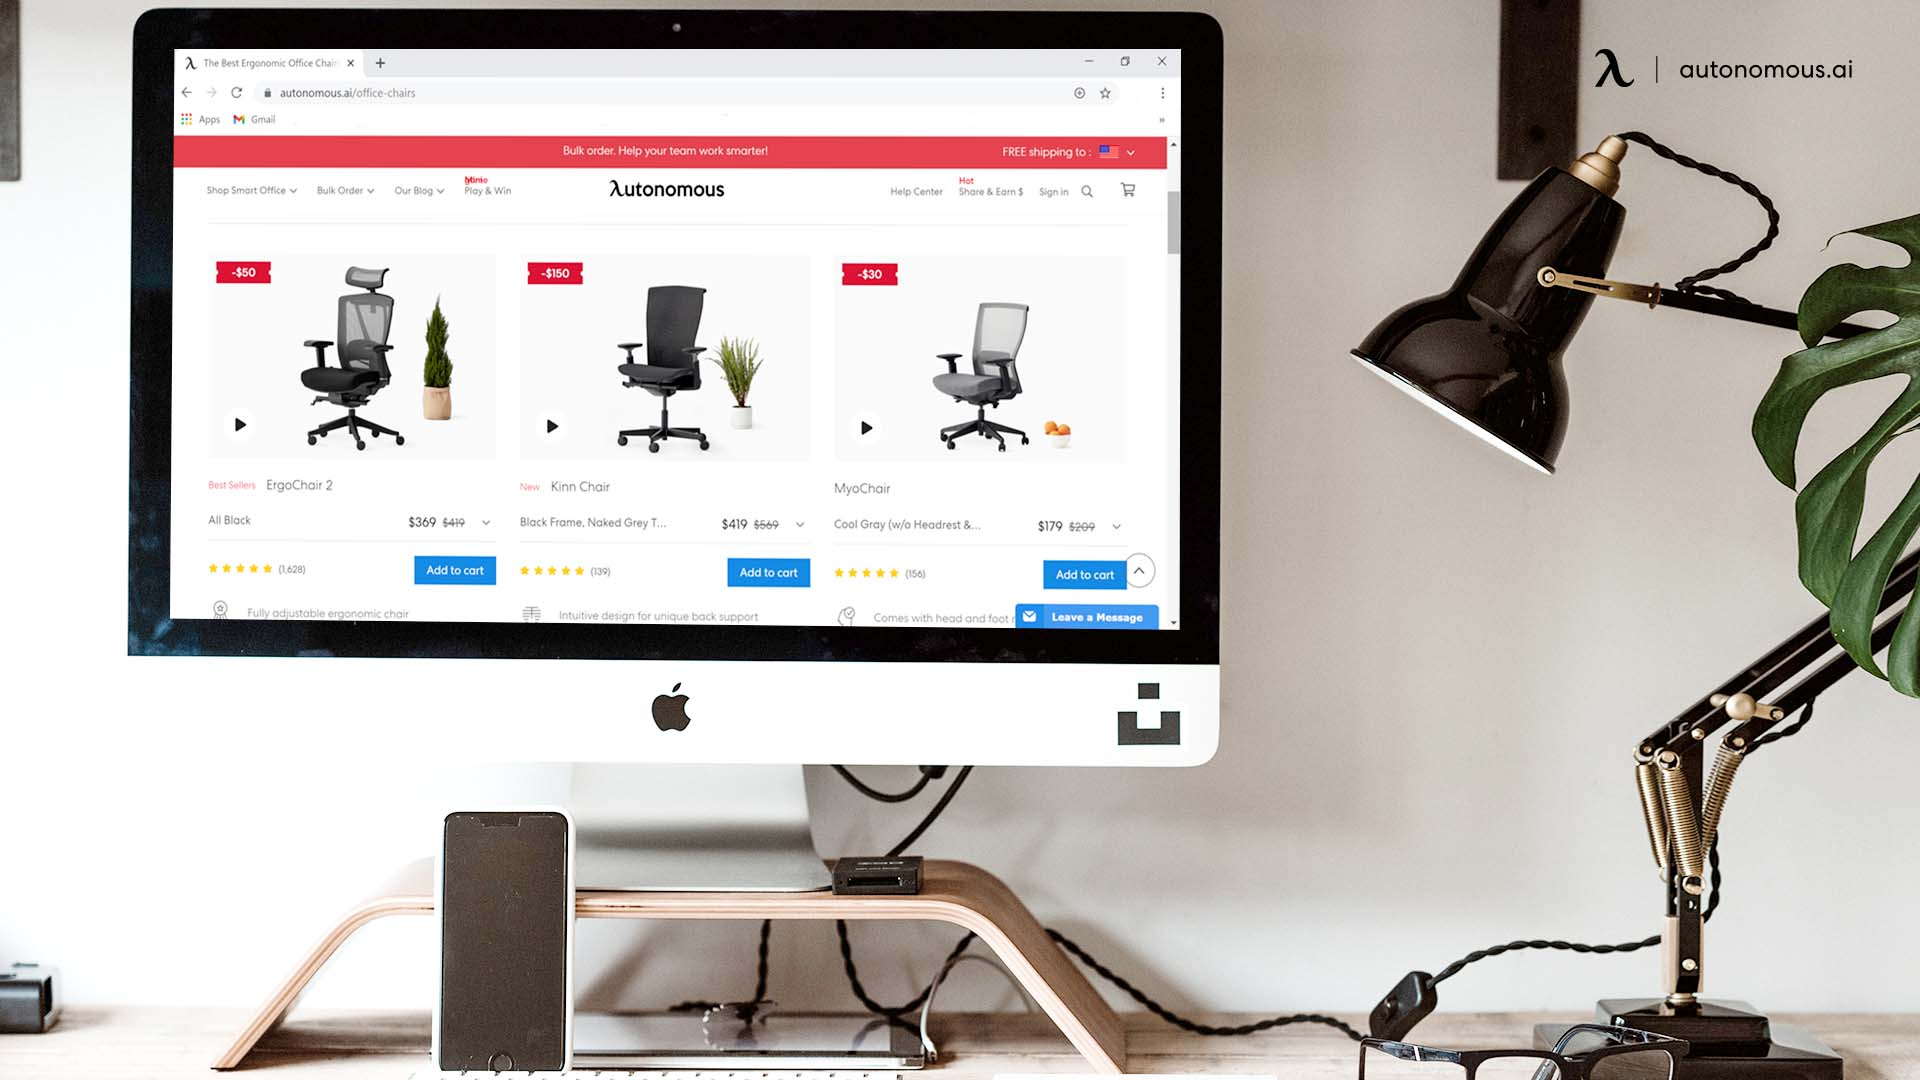 Where to Buy New Ergonomic Office Chair Online